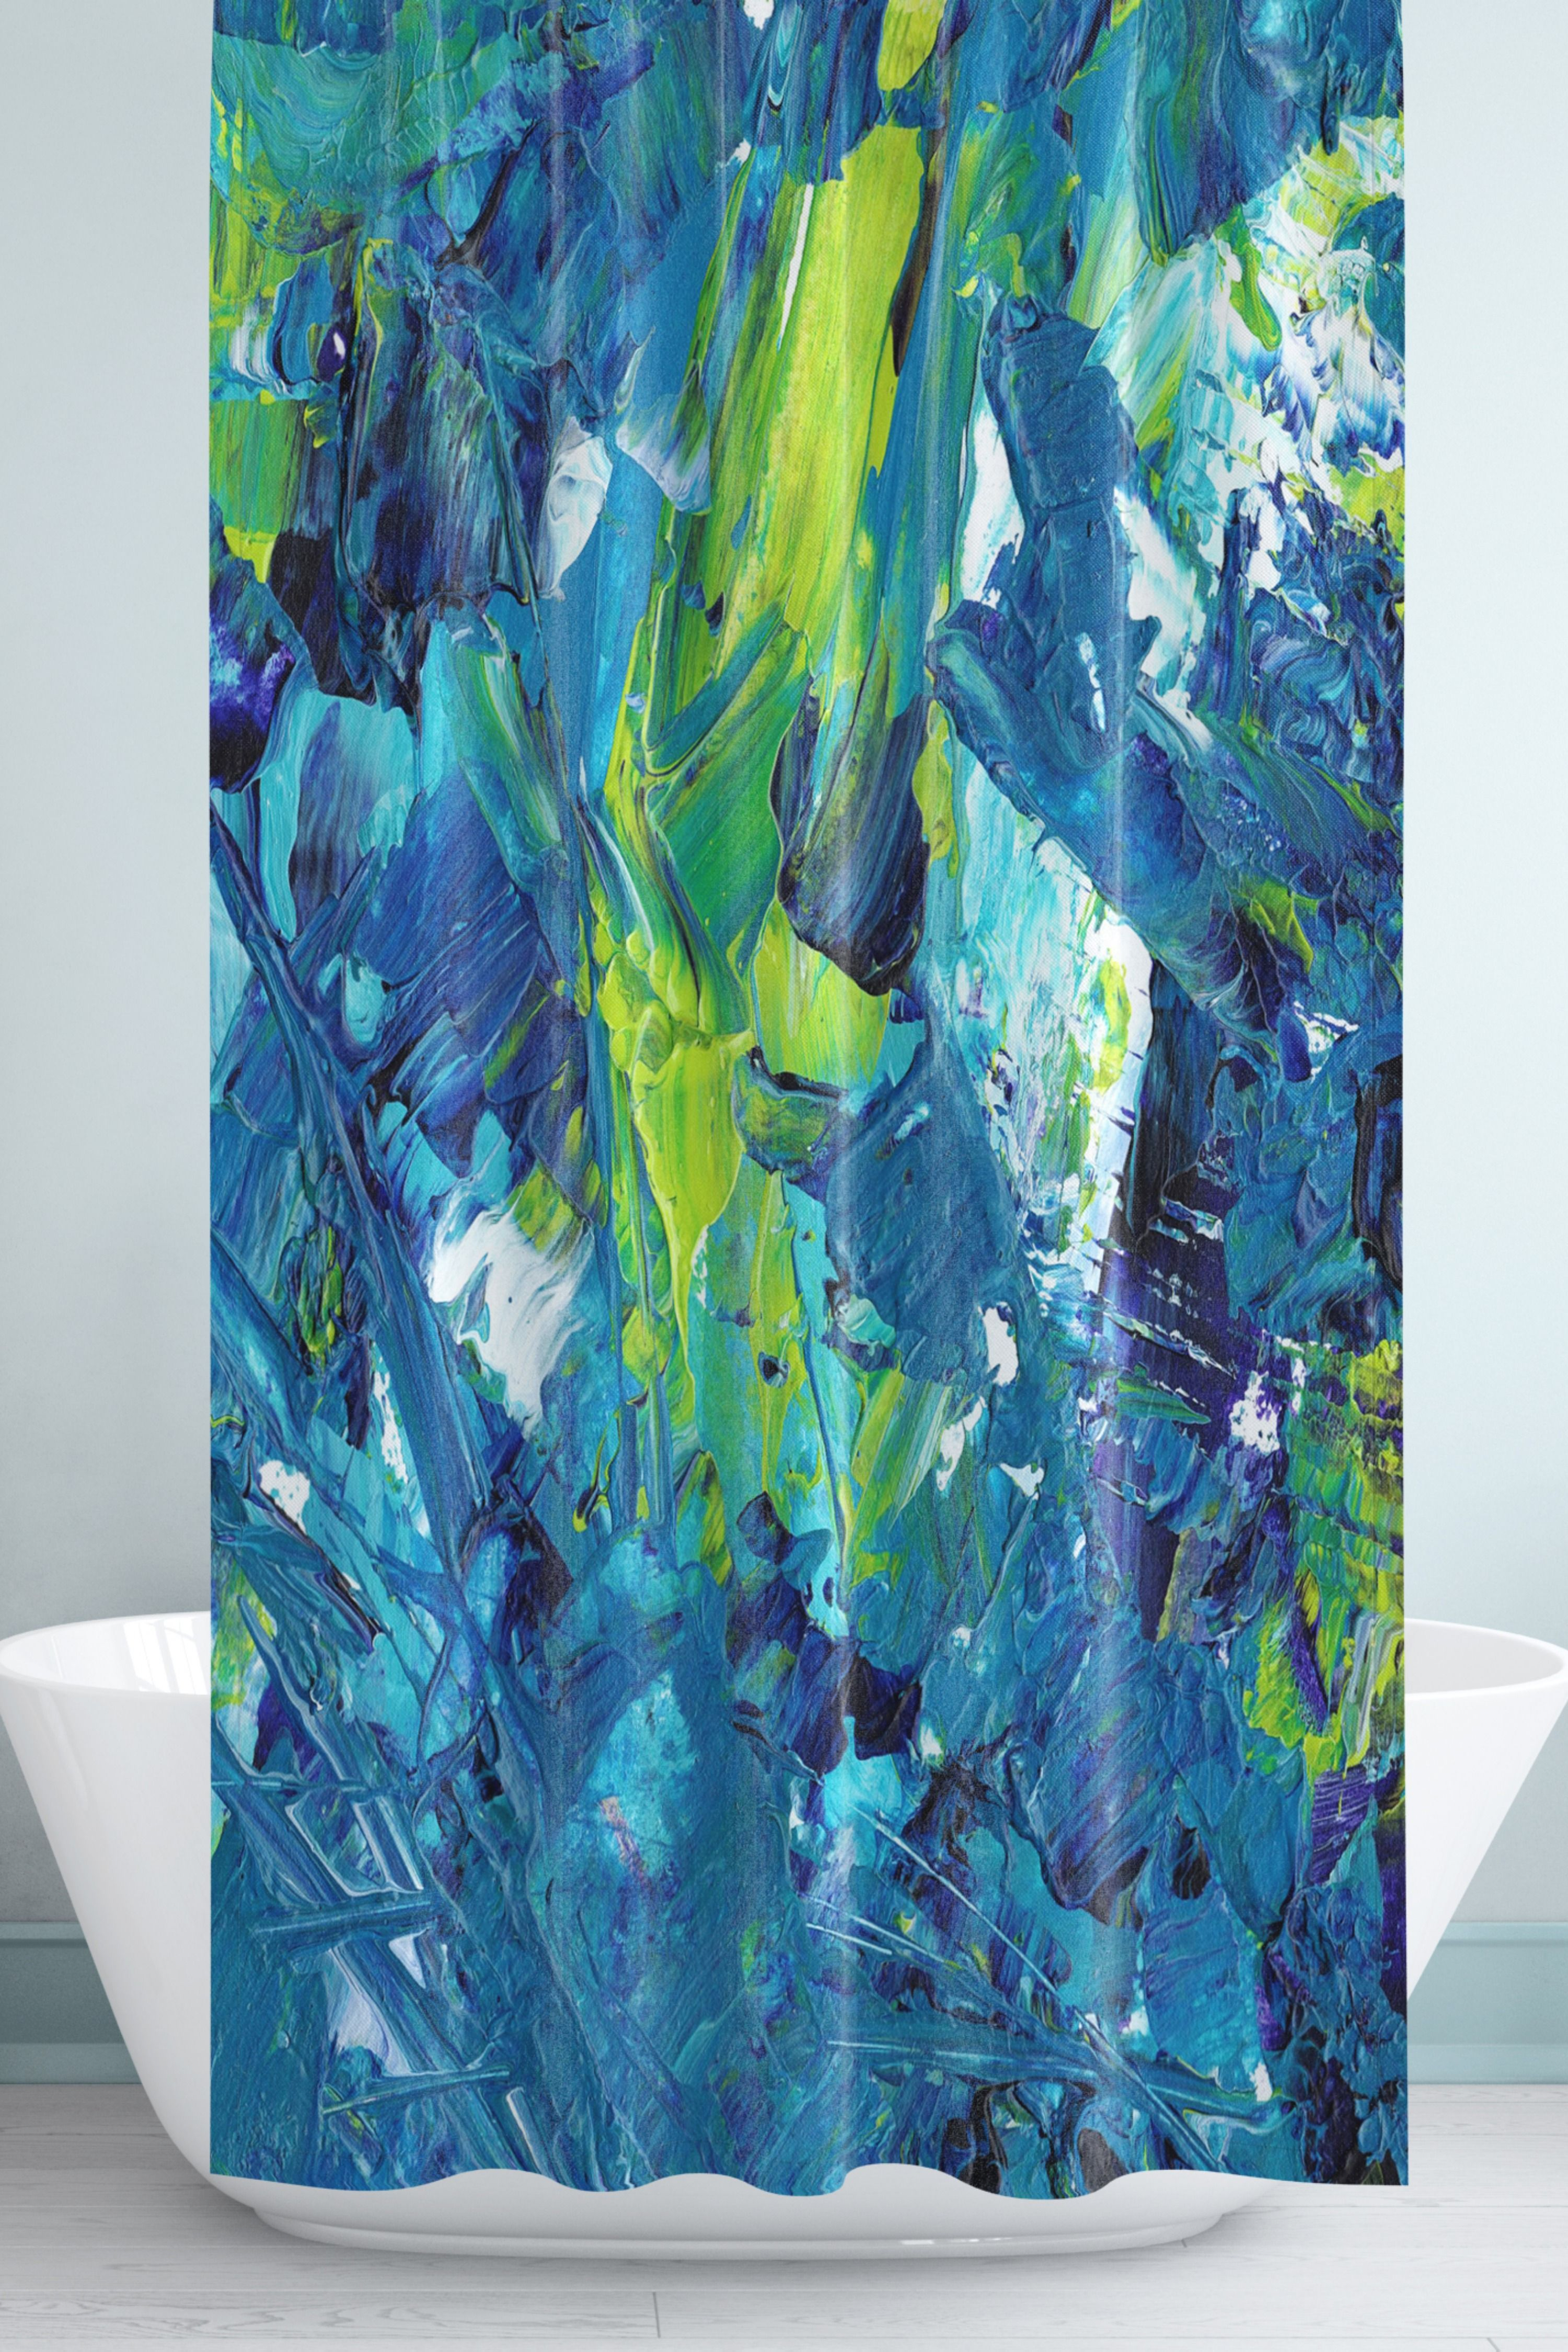 Abstract Art Shower Curtain Blue And Green And White Modern Decor Lime Green Peacock Blue Shower Curtain With Images Abstract Art Shower Curtain Blue Shower Curtains Functional Art